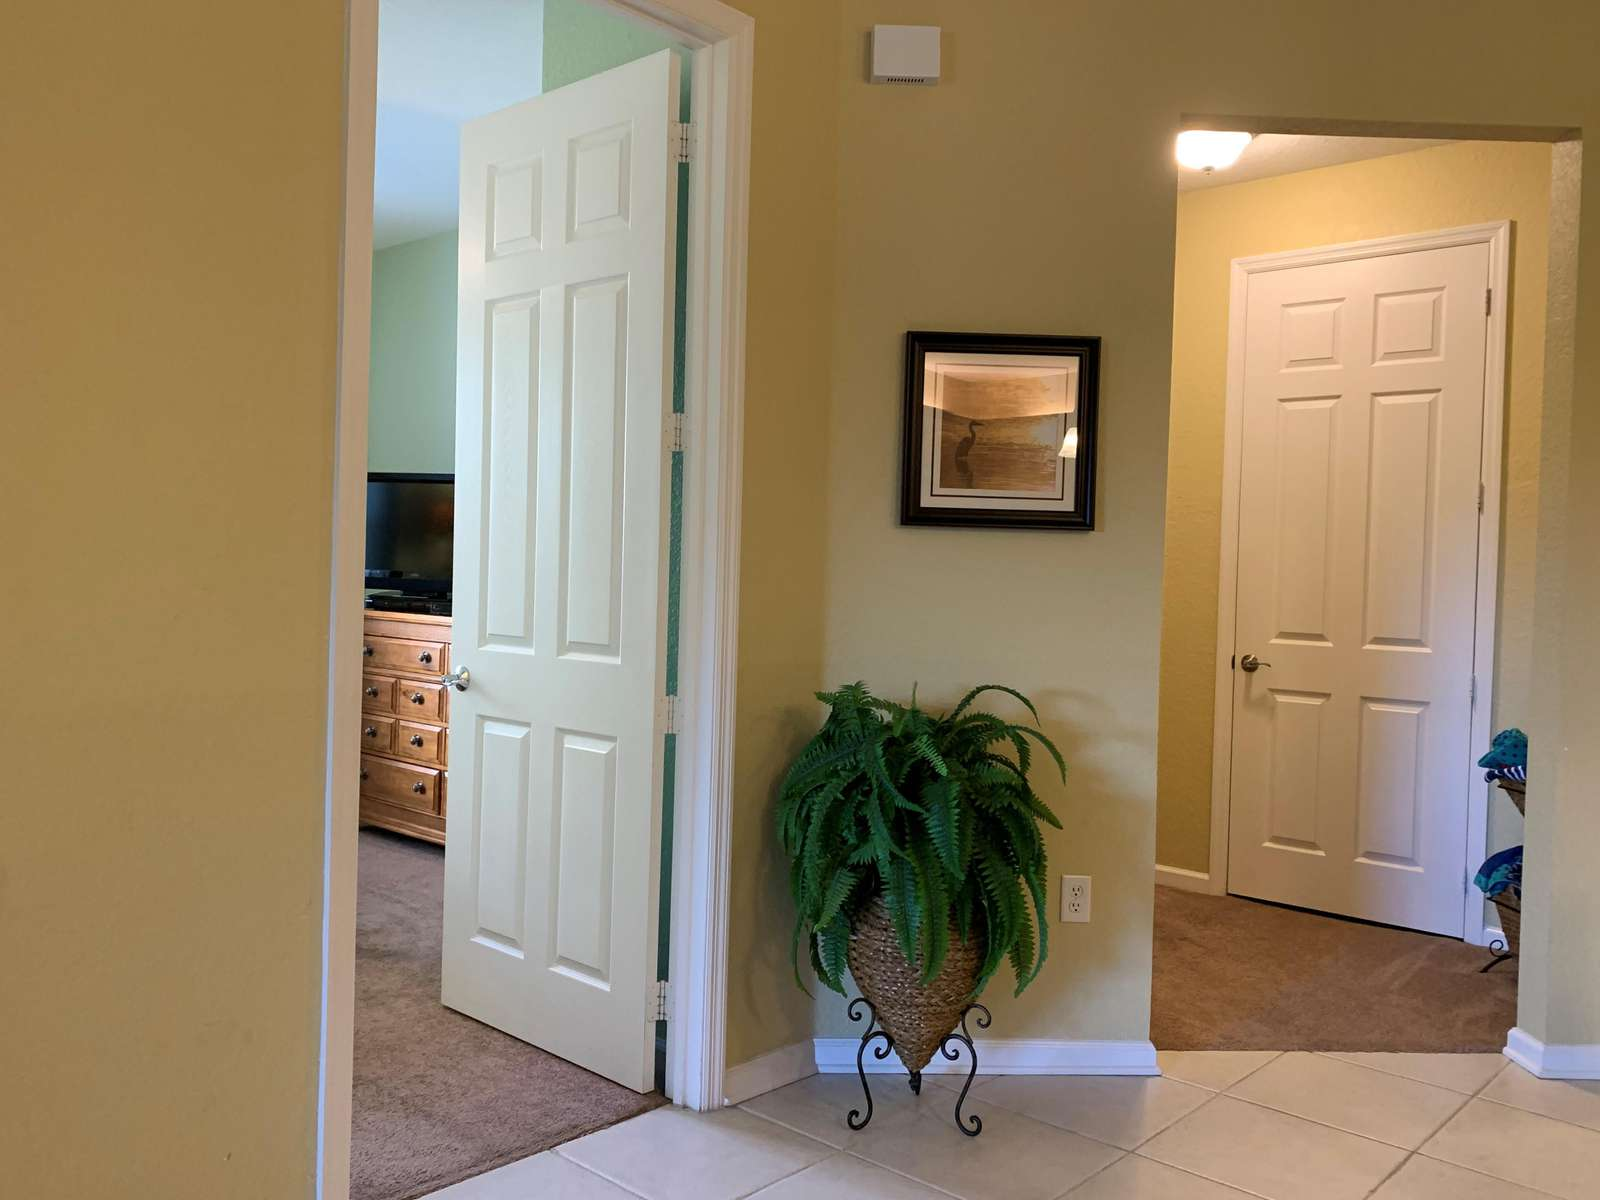 Guest rooms and guest bathroom located separately from master bedroom